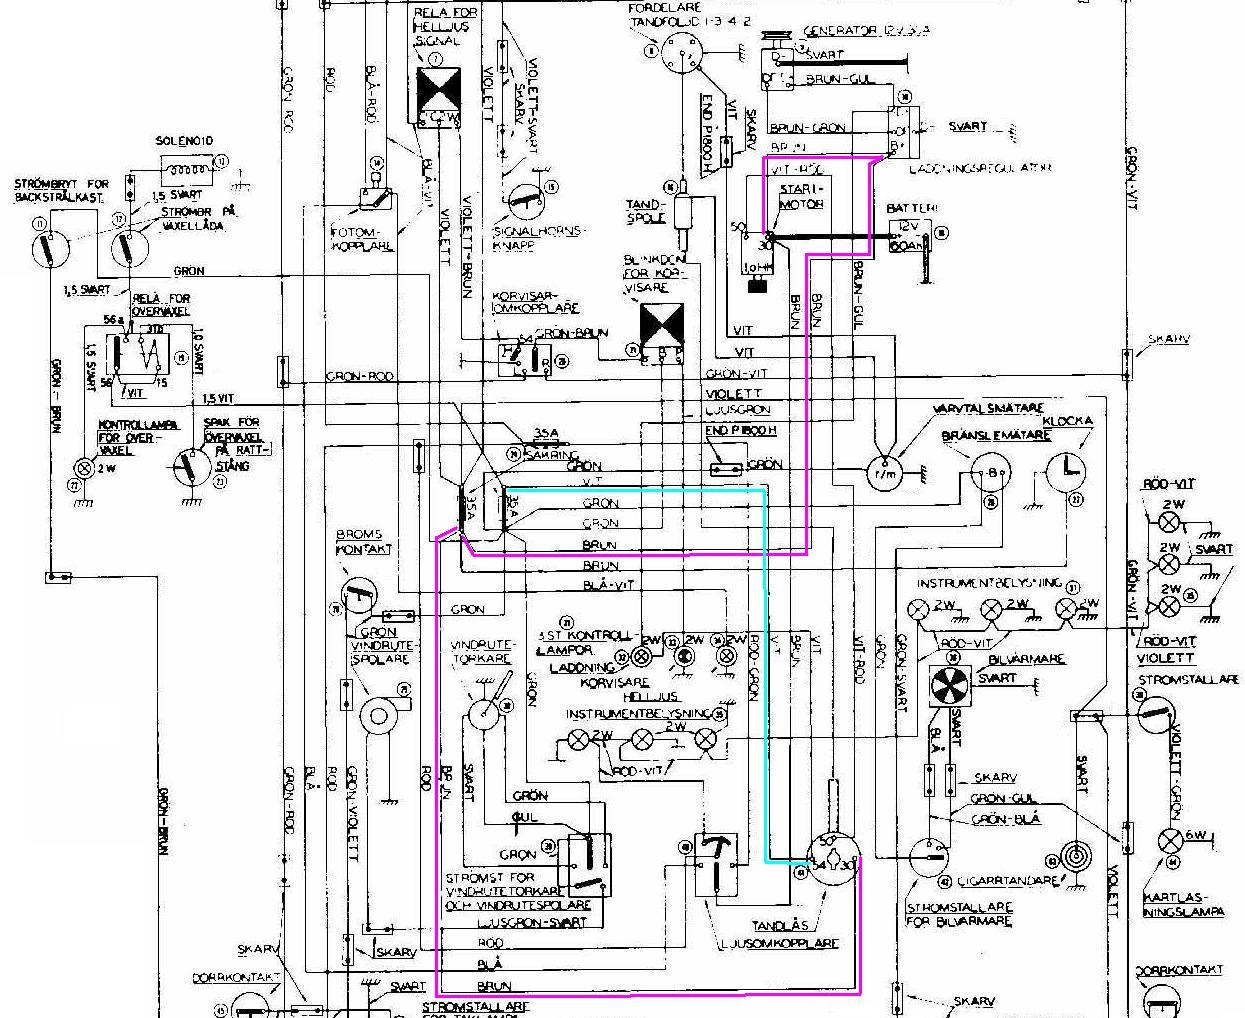 1800 Wiring Diagram marked up 1800 ignition wiring swedish vs british design austin 10/4 wiring diagram at fashall.co